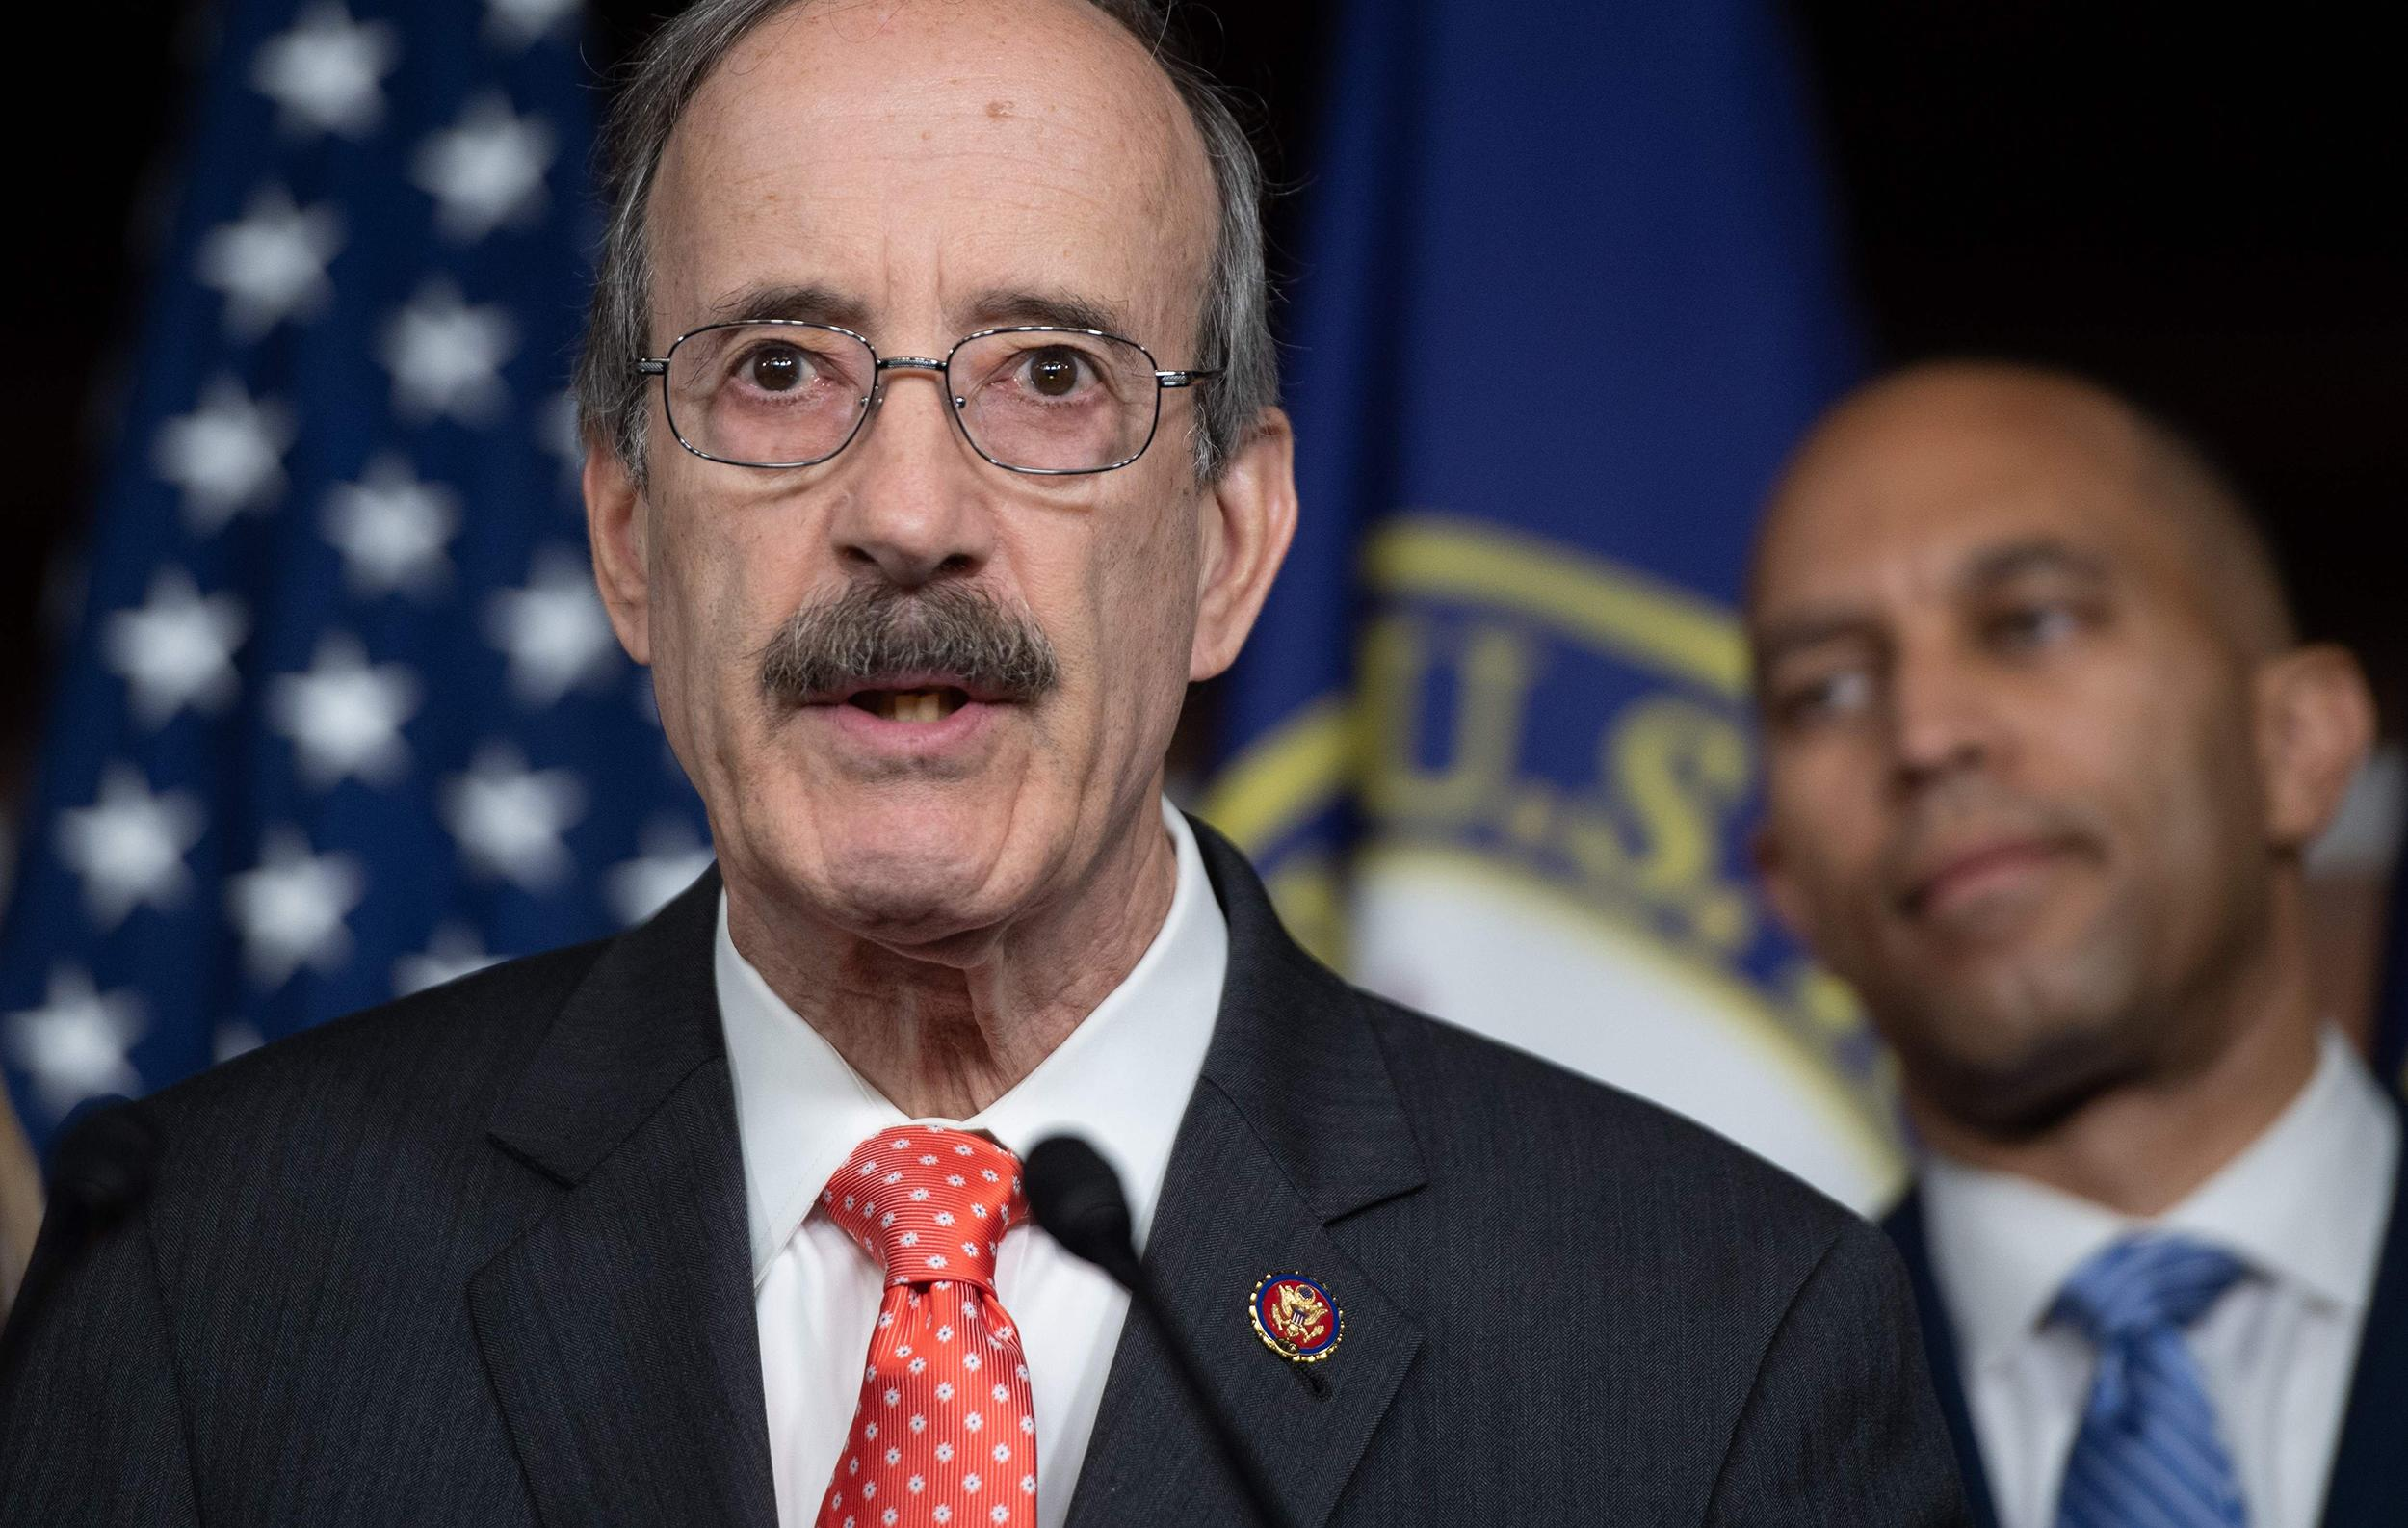 Democratic Rep. Eliot Engel caught on hot mic amid unrest: 'If I didn't have a primary, I wouldn't care'